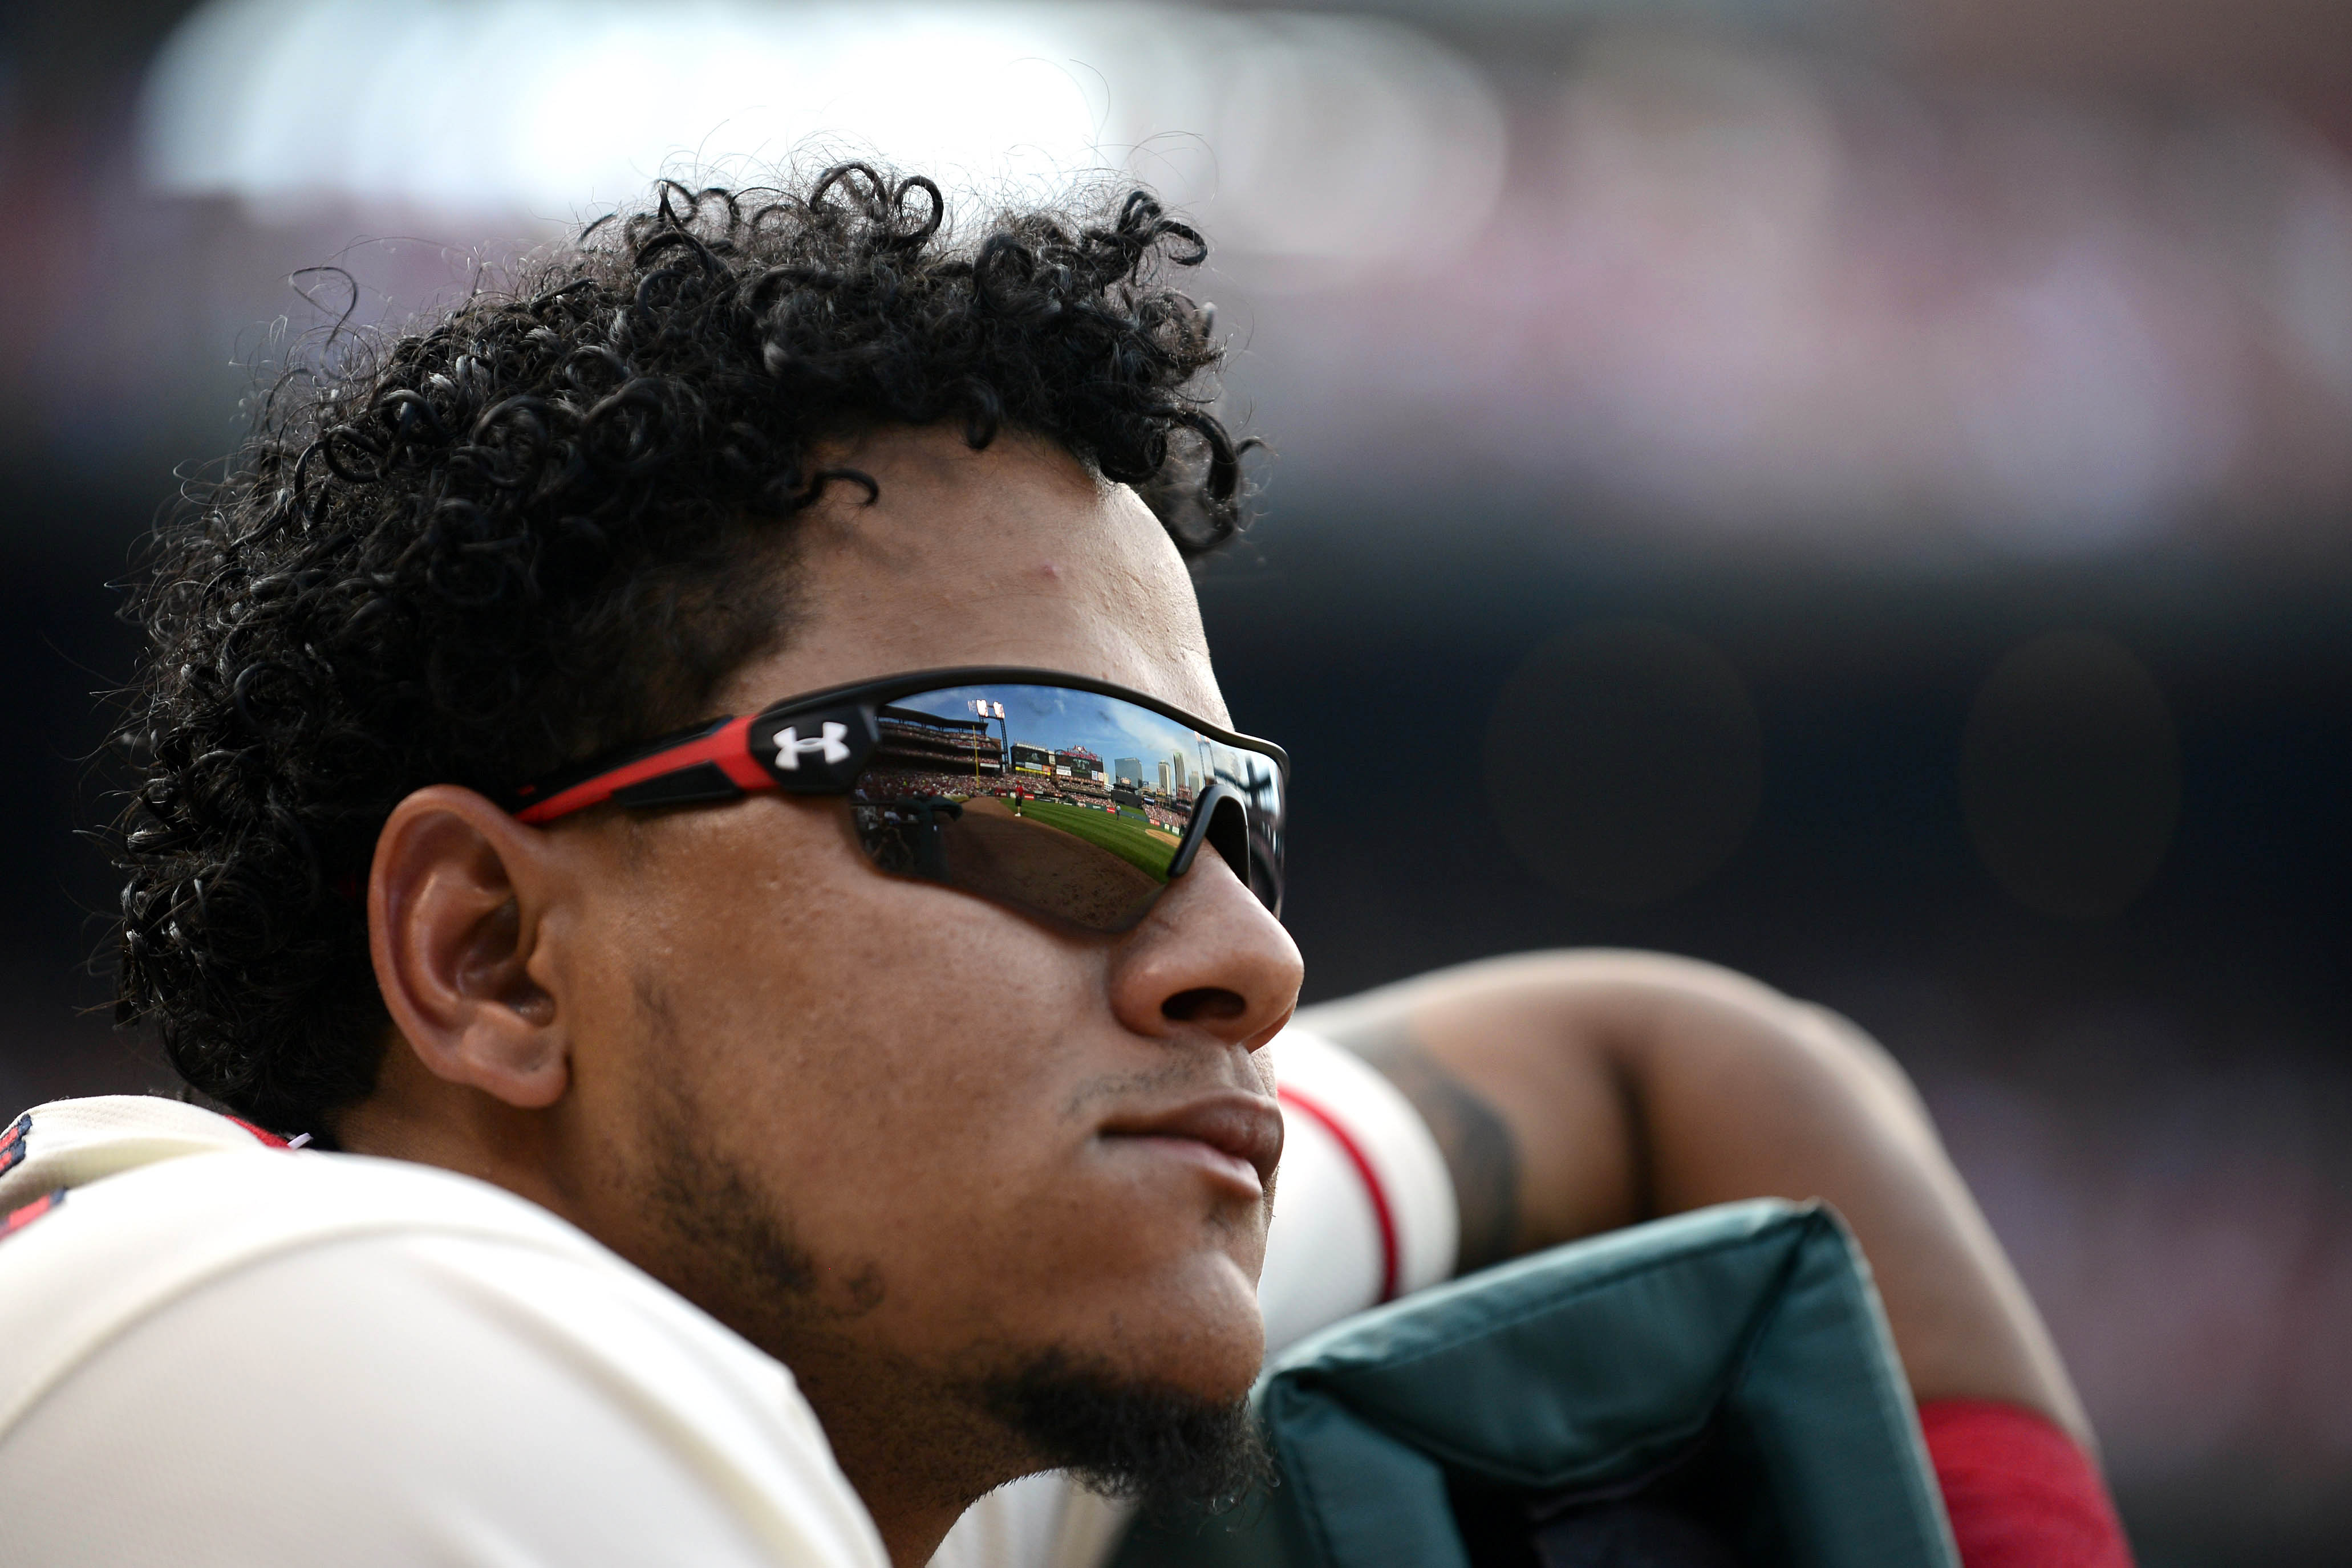 carlos is not a candidate for this vote, but he still wins at being cool